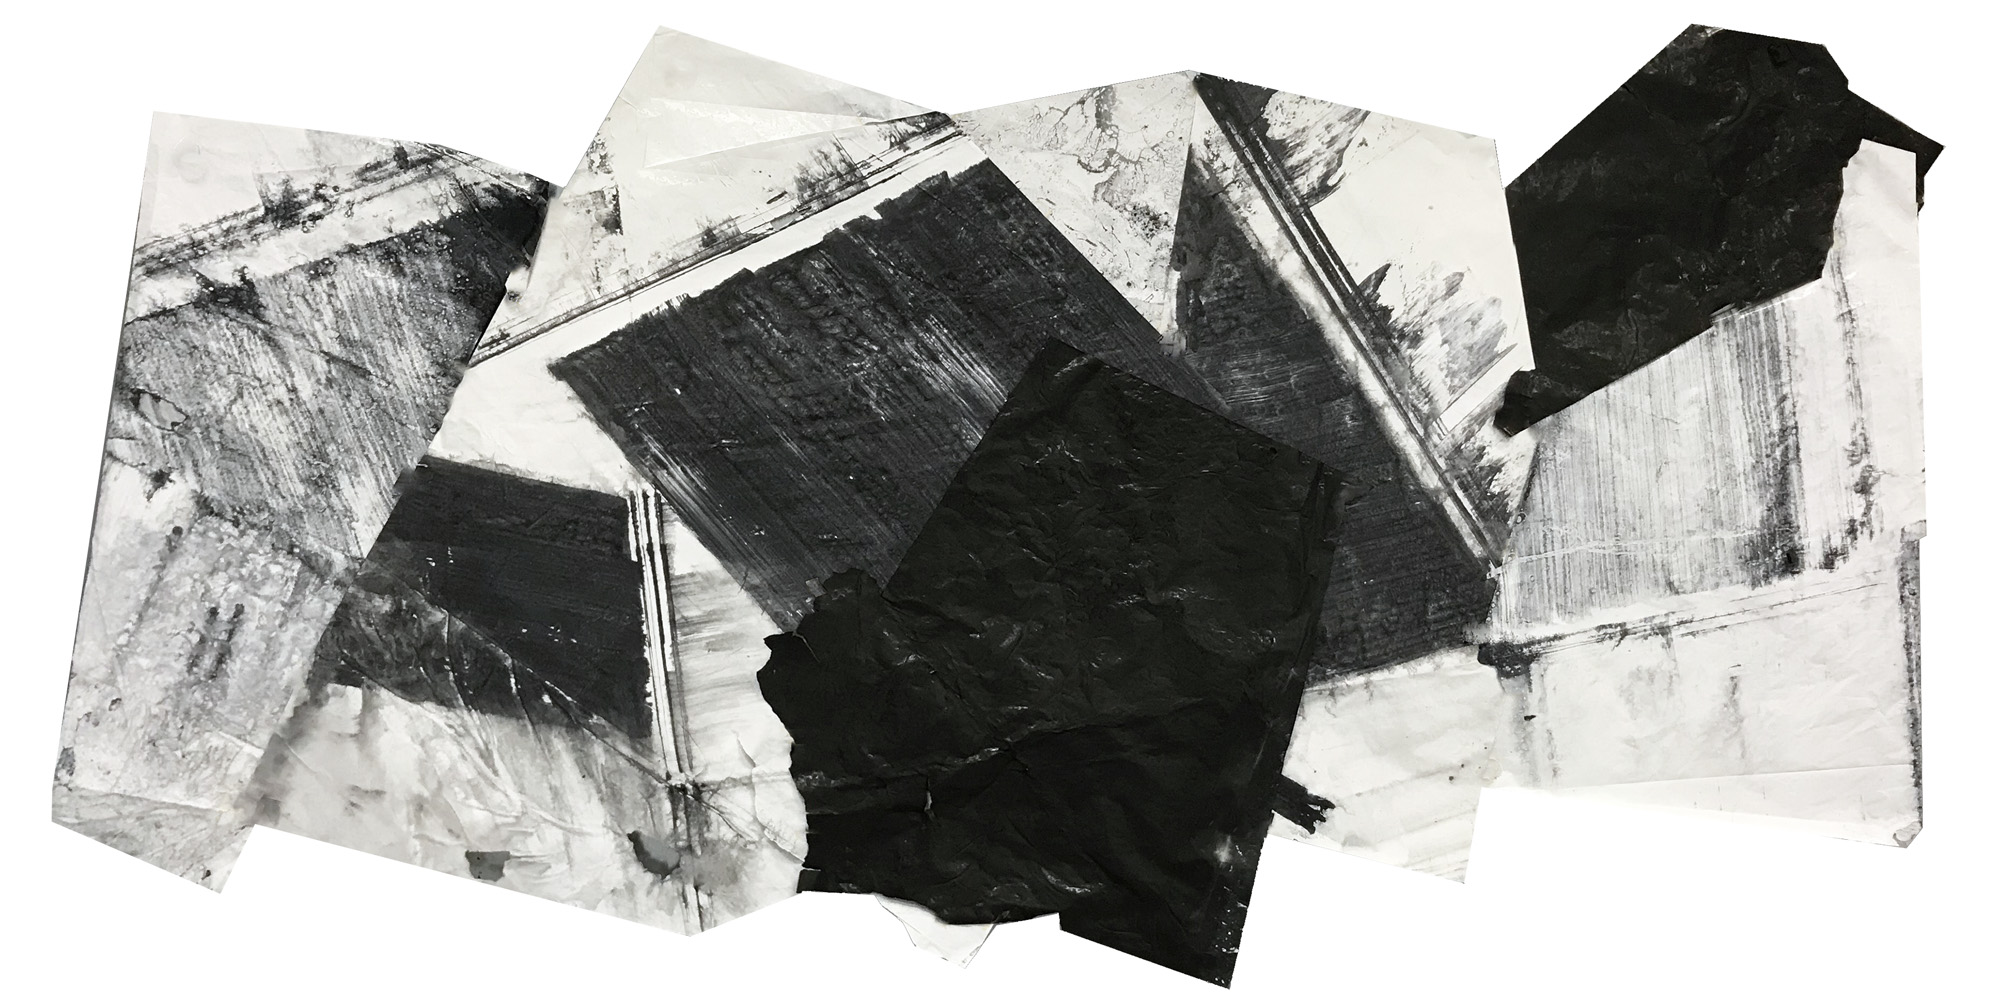 Zheng Chongbin   Untitled 1 , 2018 Ink and acrylic on xuan paper, mounted 135 x 271.5 cm